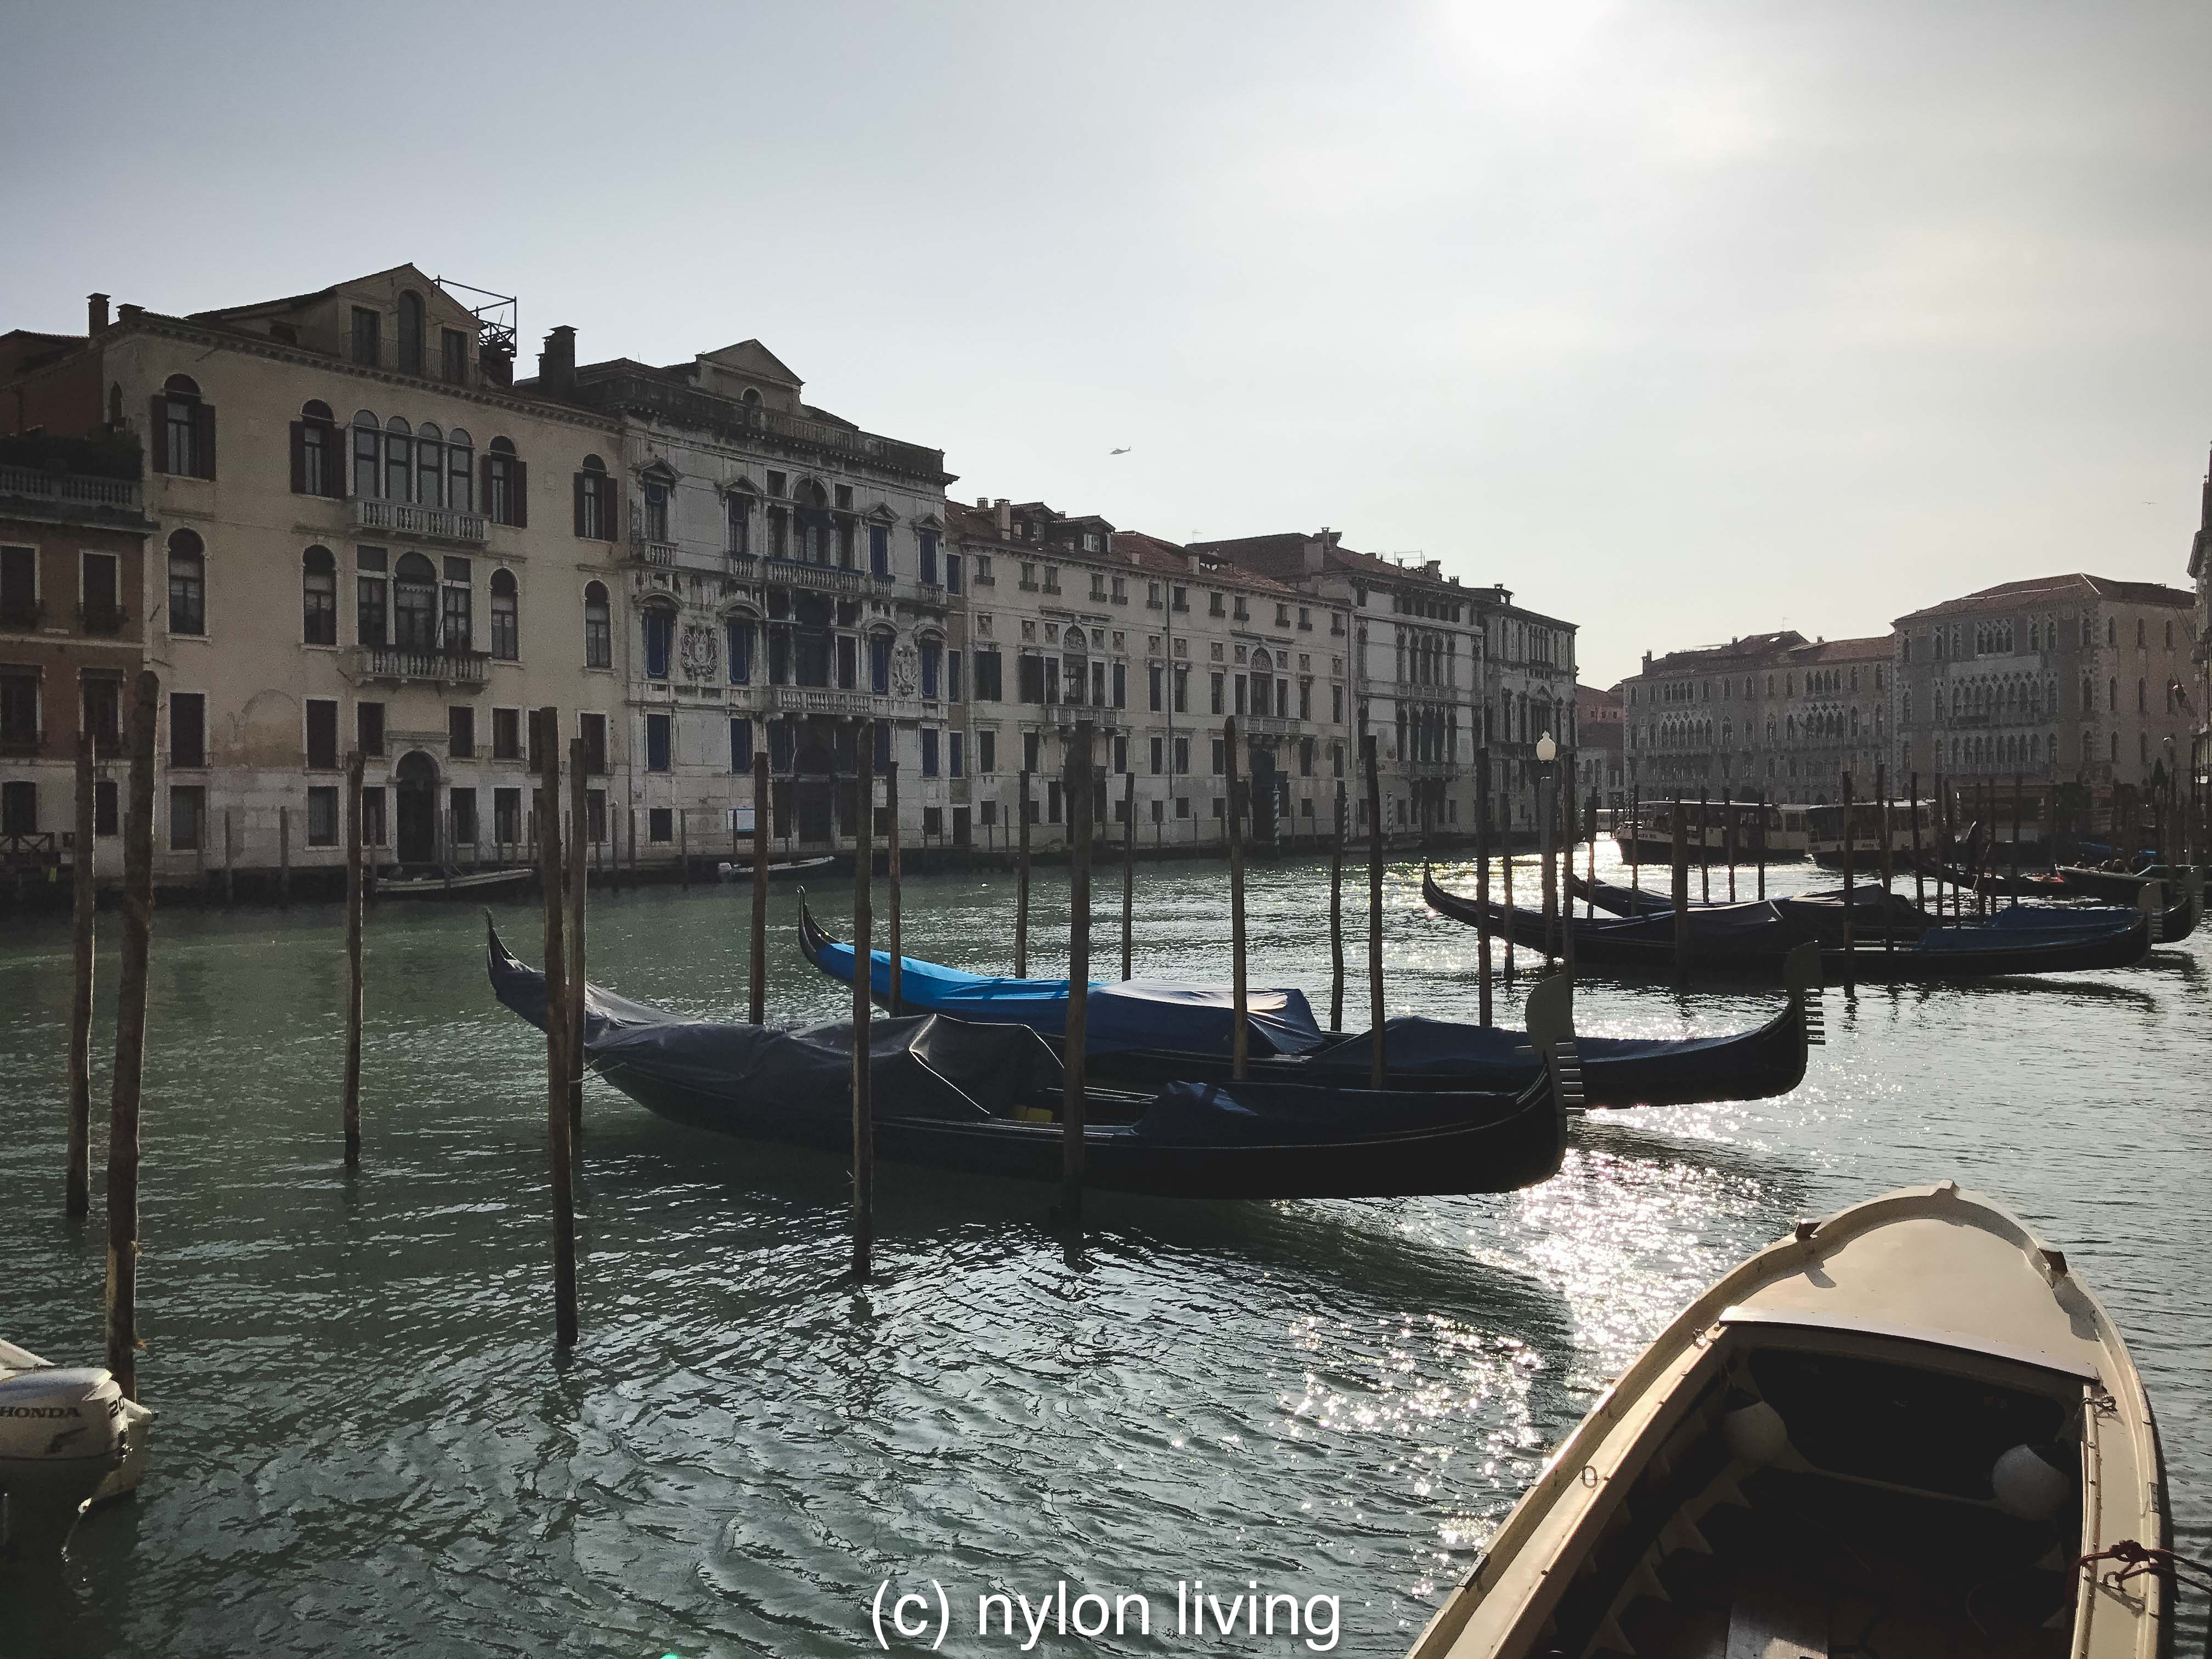 Shopping for Venice Carnival Costumes at a Venetian Palazzo